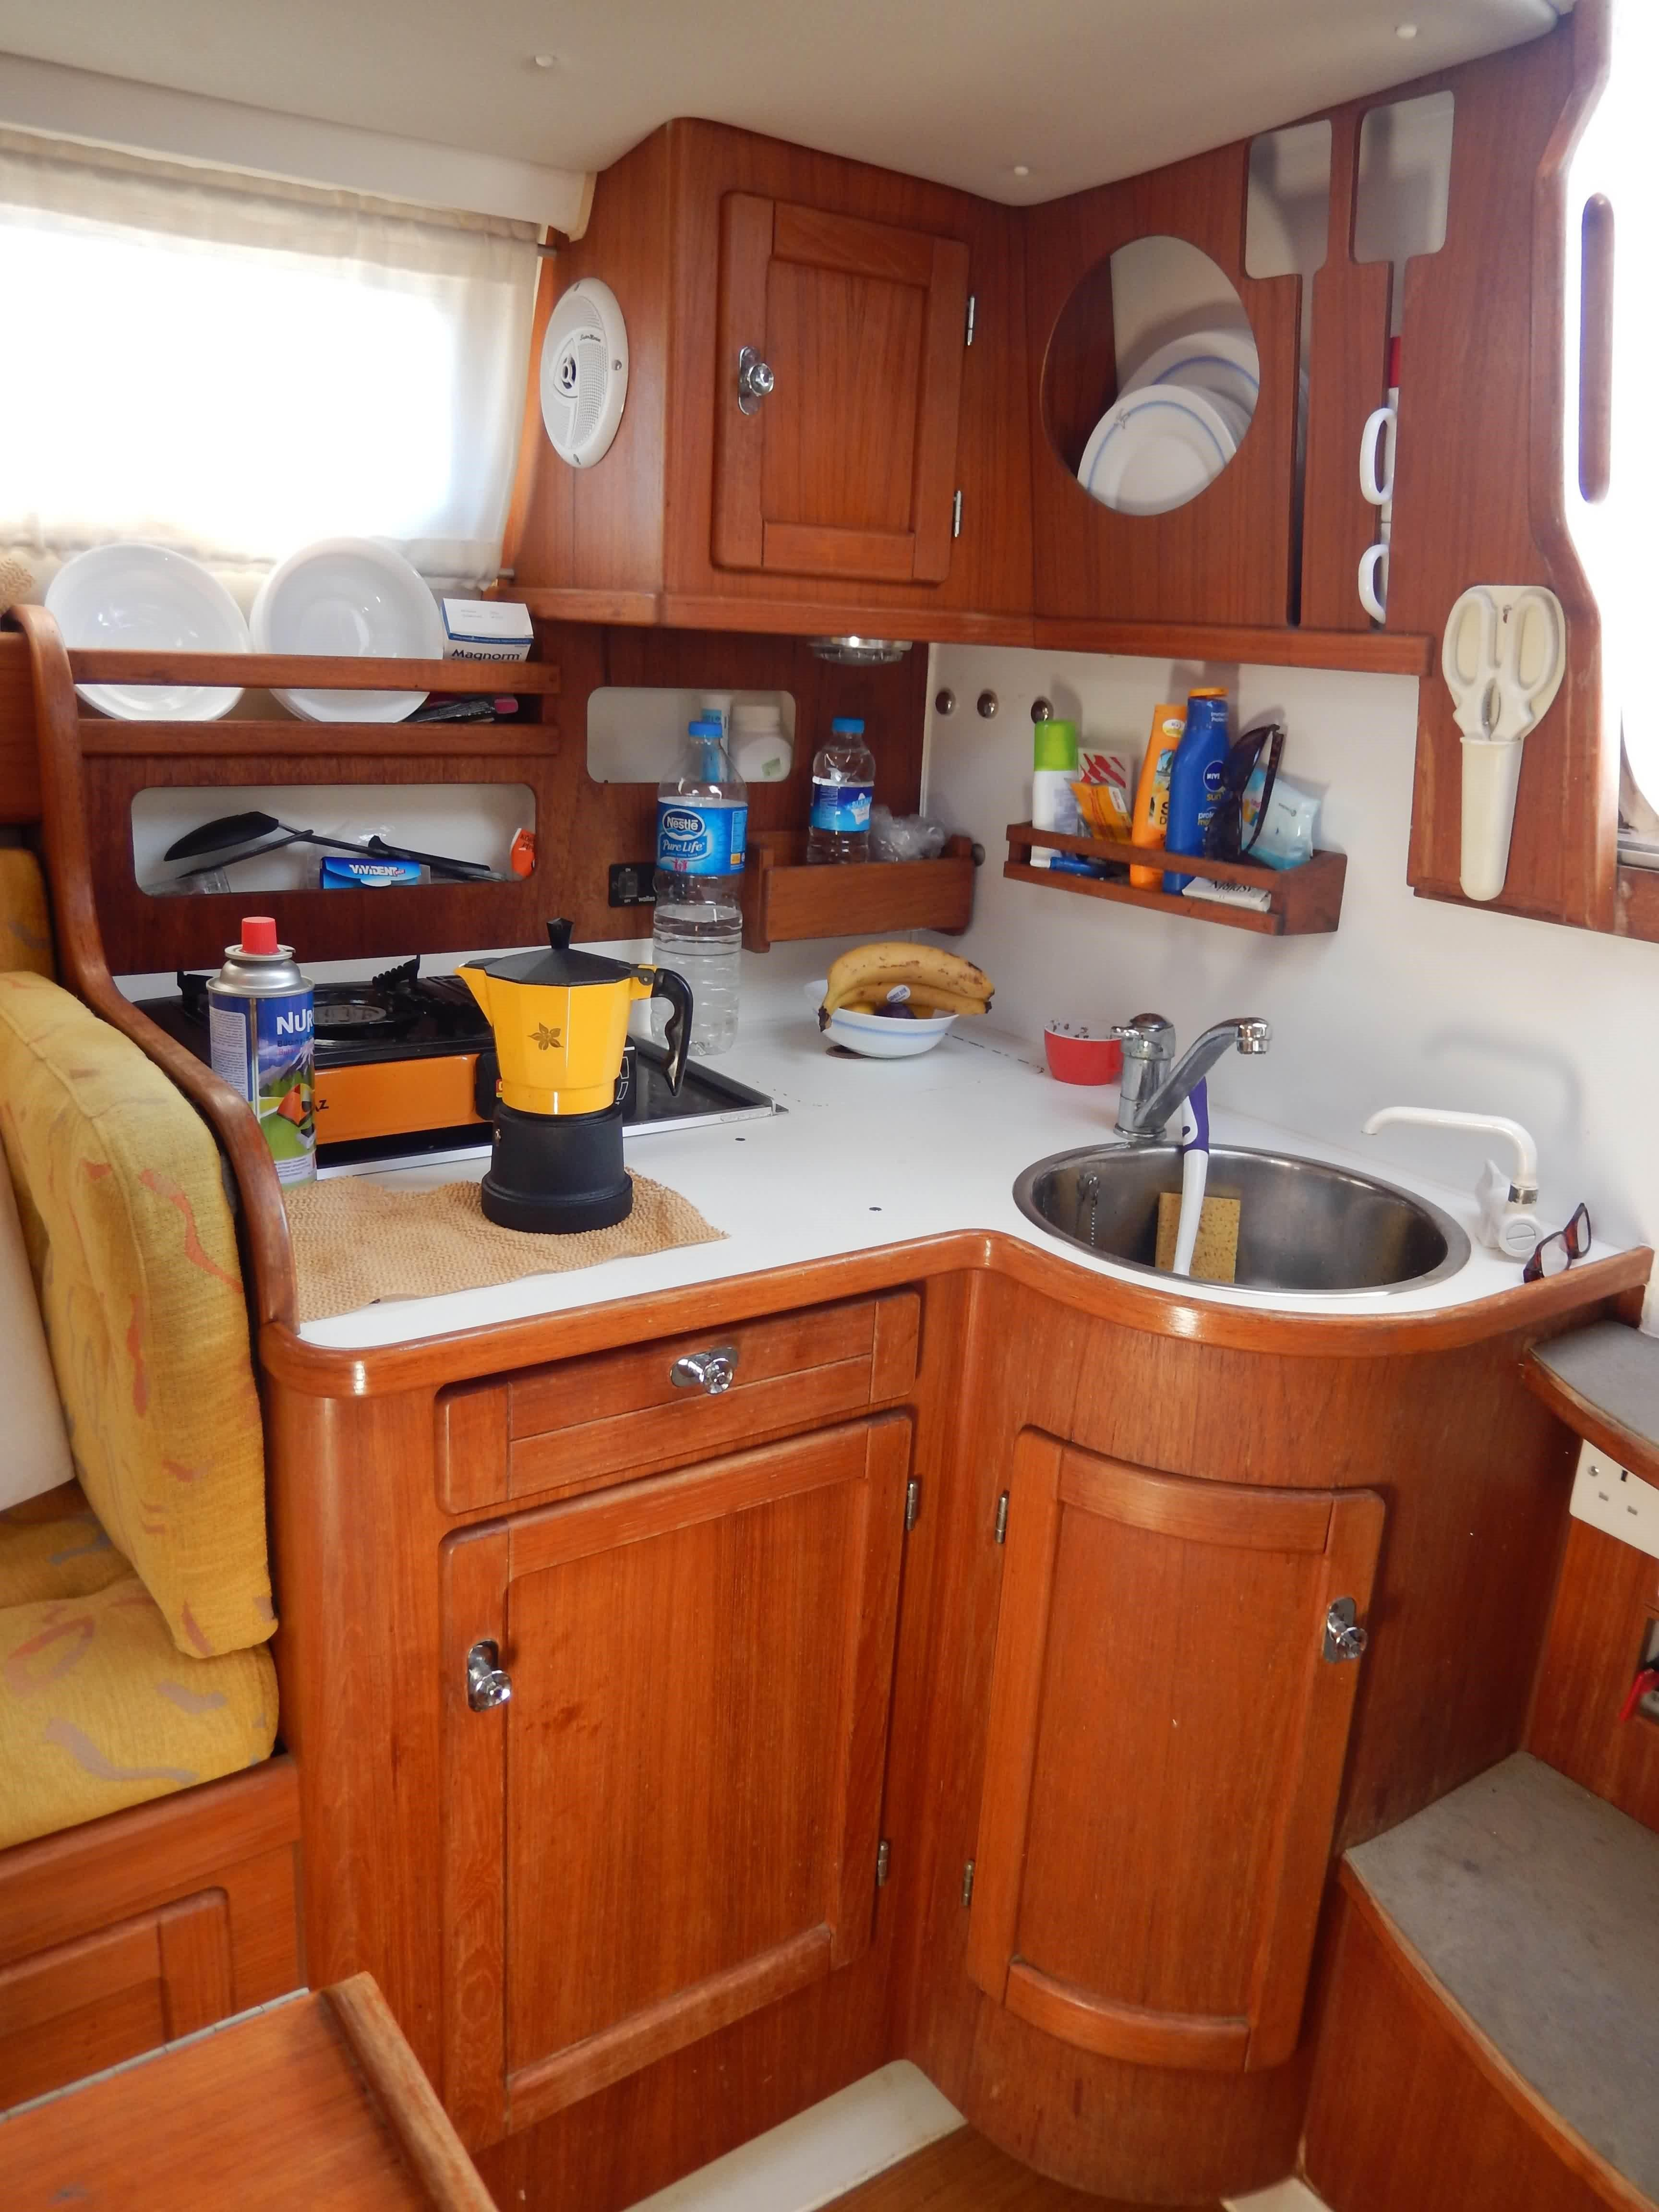 Dragonfly Dragonfly 1000 Trimaran Boat For Sale